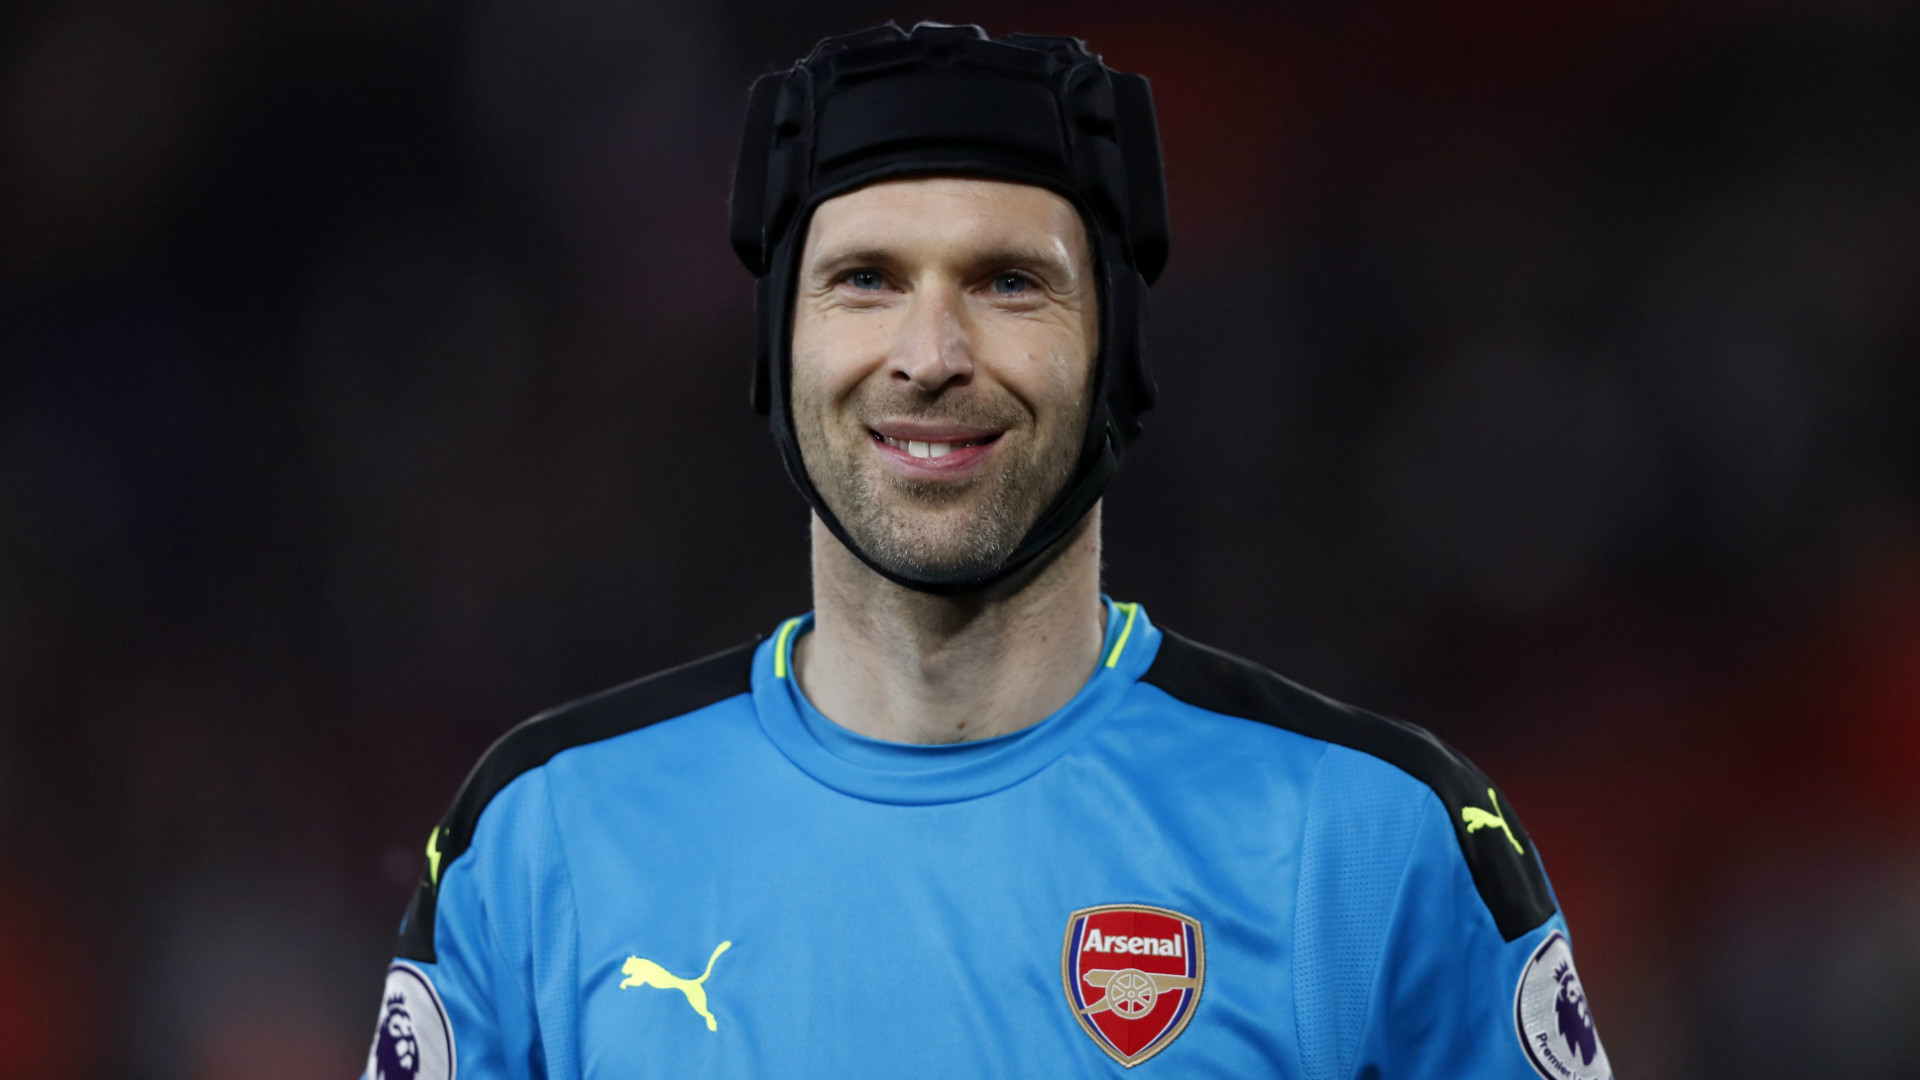 Petr Cech Arsenal Premier League